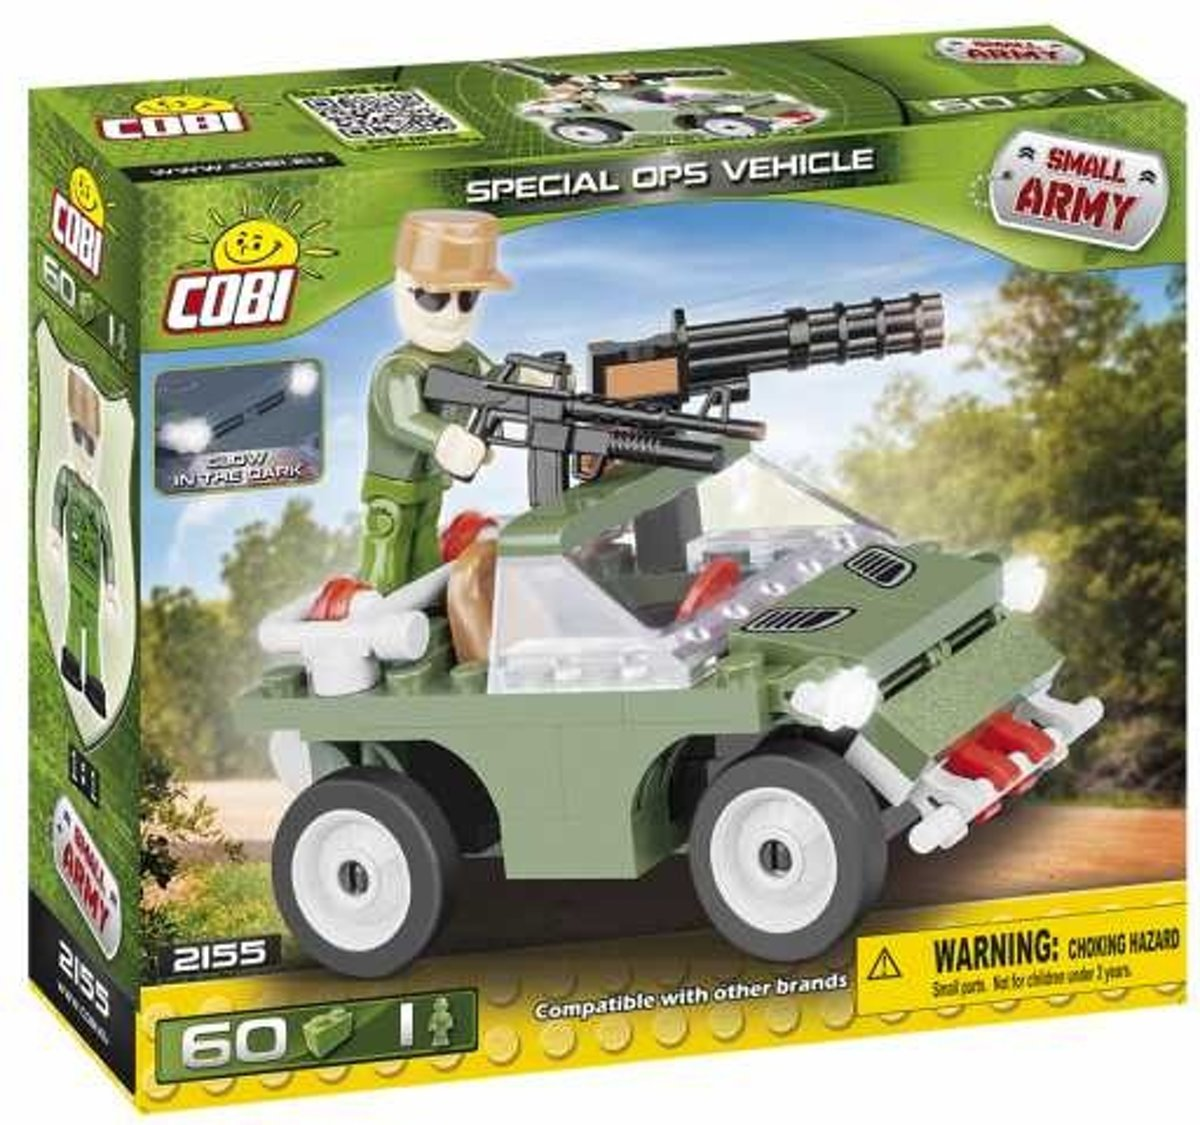 Cobi Small Army Special Ops Vehicle Bouwset 60-delig 2155